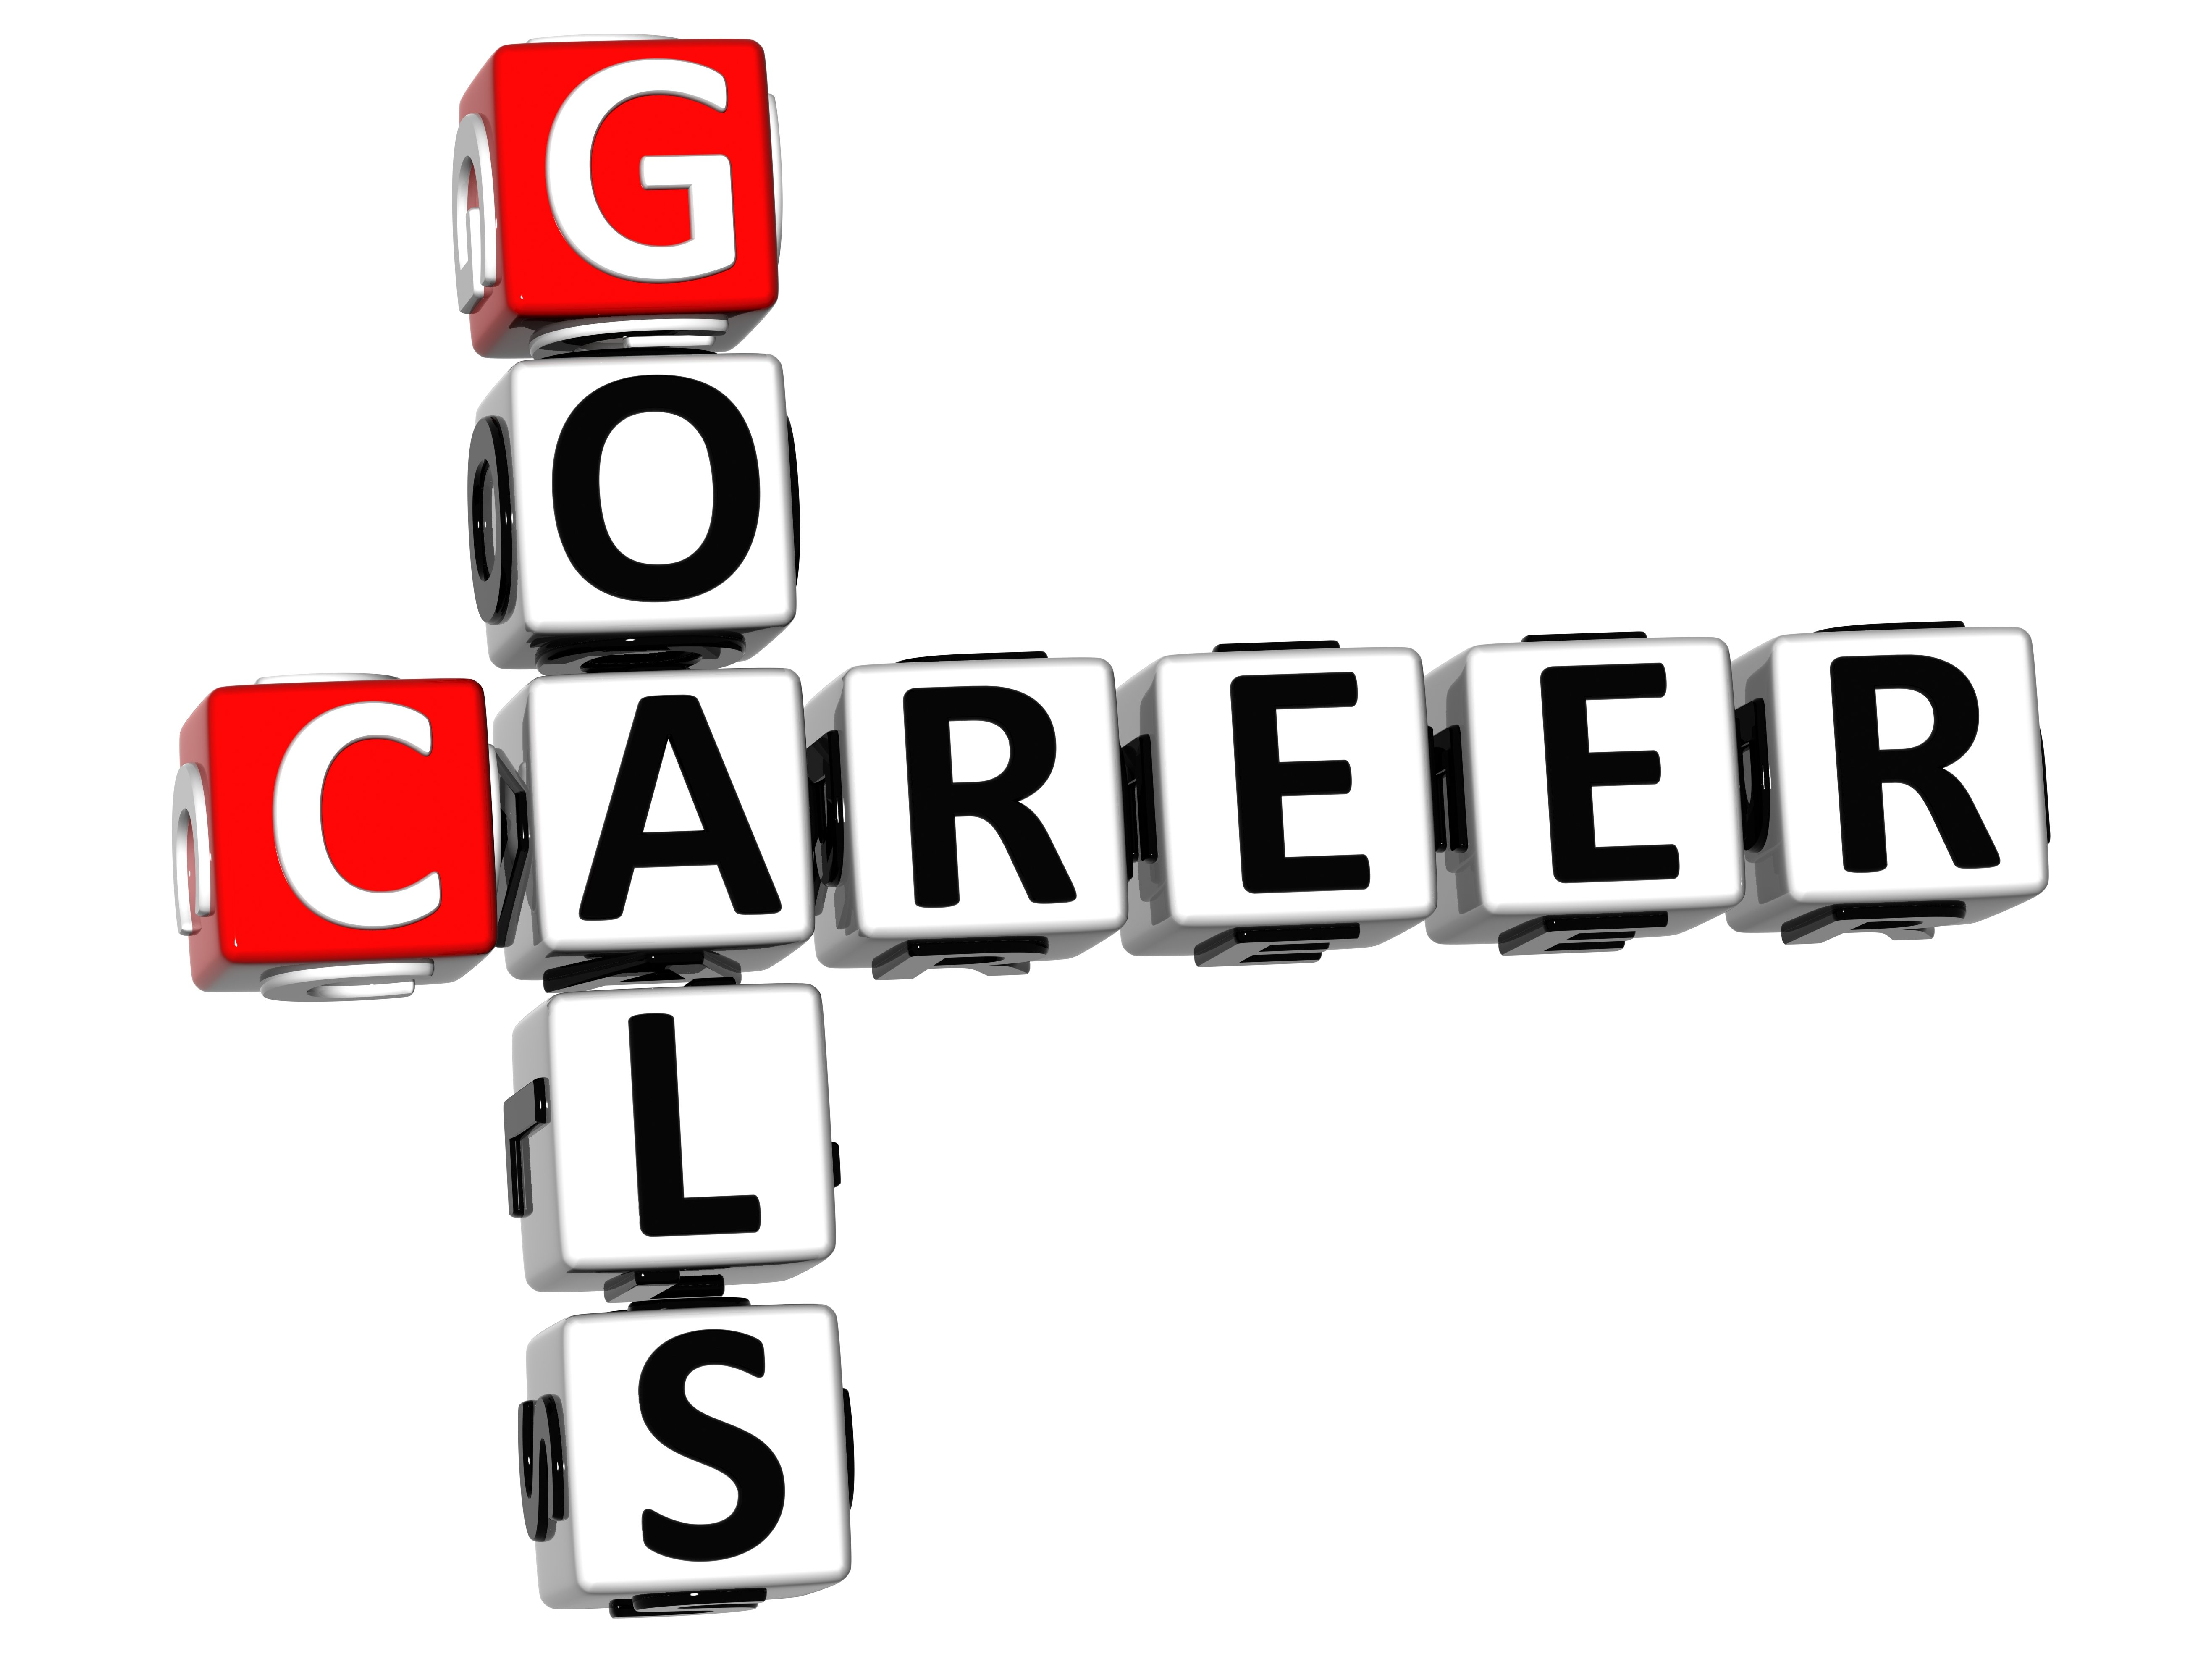 3d career goals crossword on white backgound - Career Accomplishments